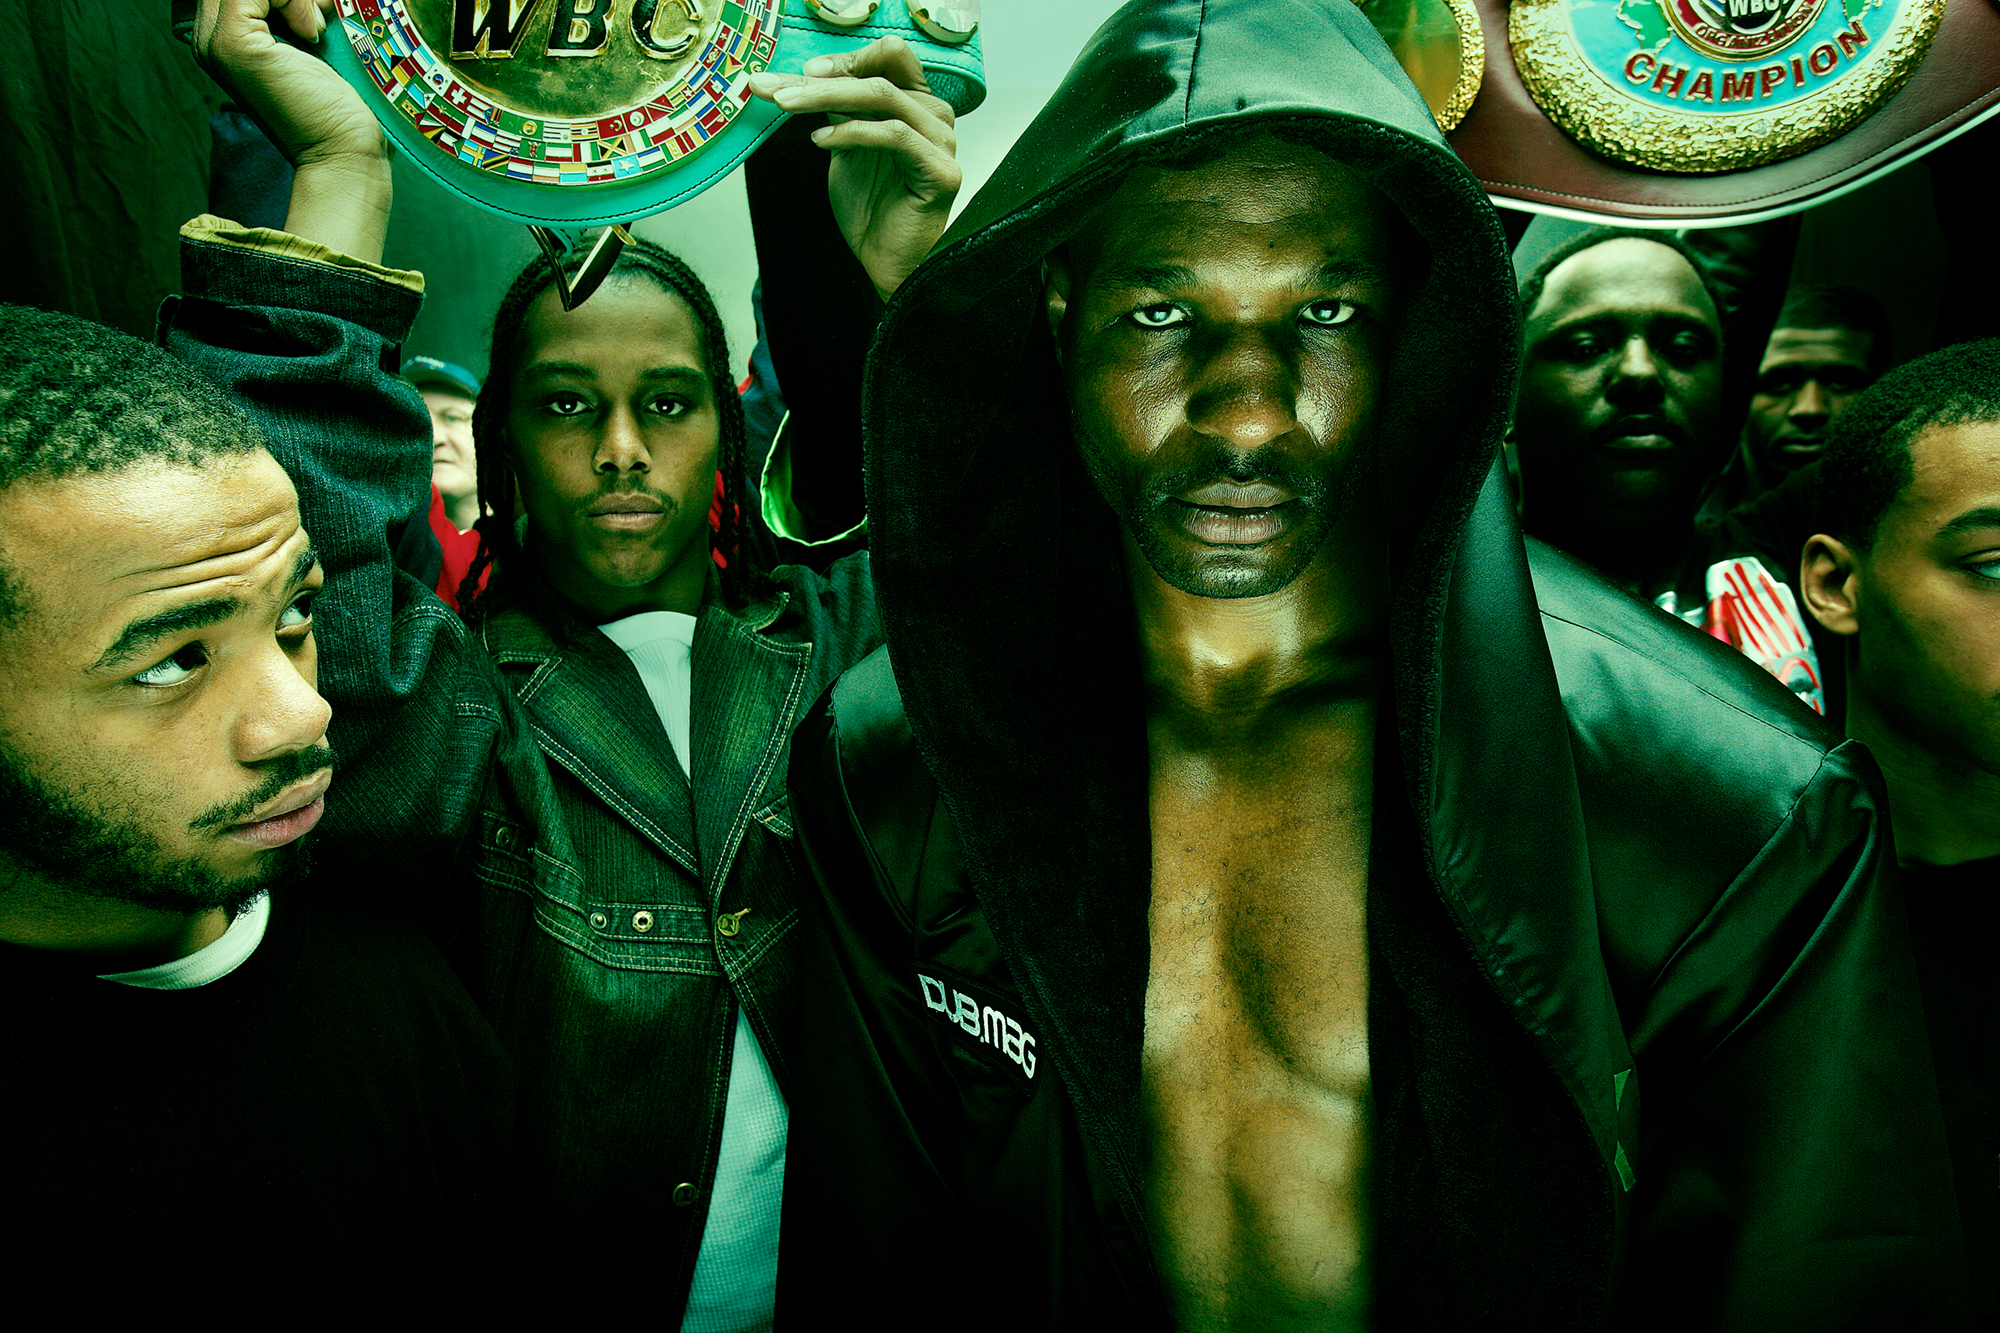 Bernard Hopkins, 2005